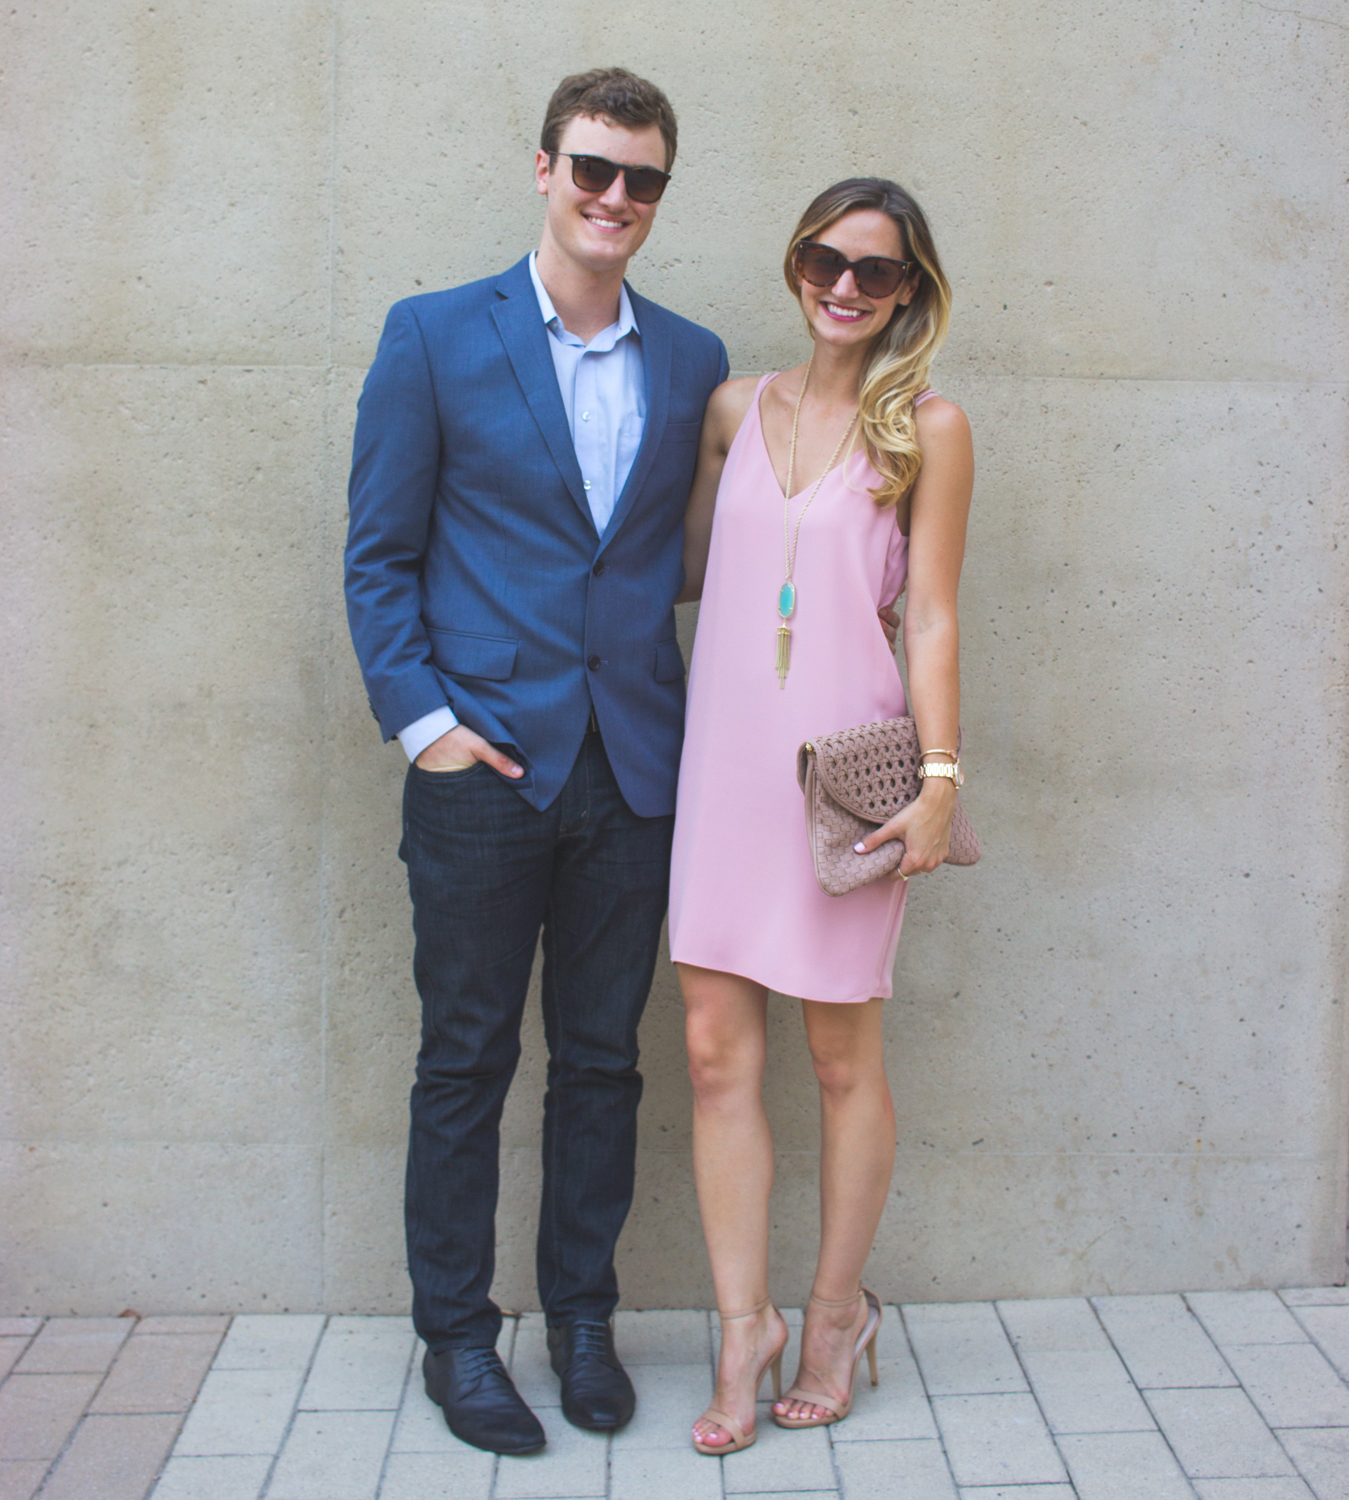 livvyland-blog-olivia-watson-date-night-summer-austin-texas-outfit-inspiration-topshop-blush-pink-slip-dress-nordstrom-mens-suit-fashion-blogger-8